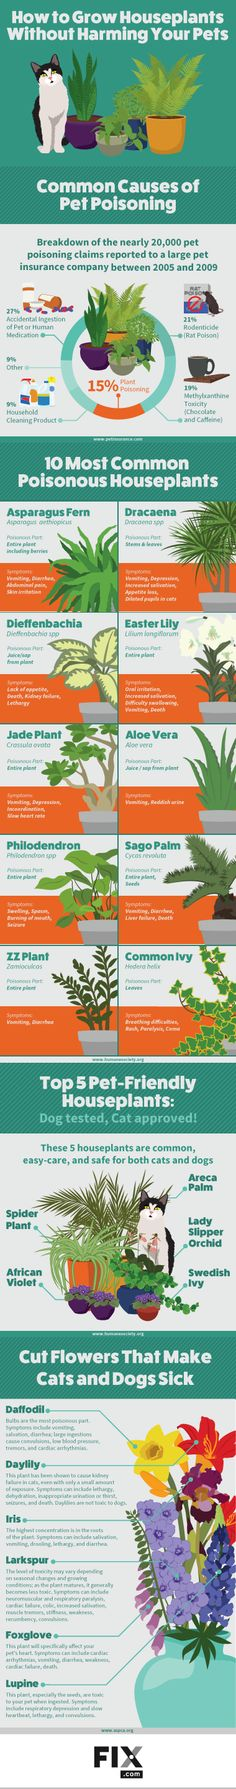 Houseplants can be a hazard to the health and well being of your pet. Follow this guide and learn which plants you should be avoiding!